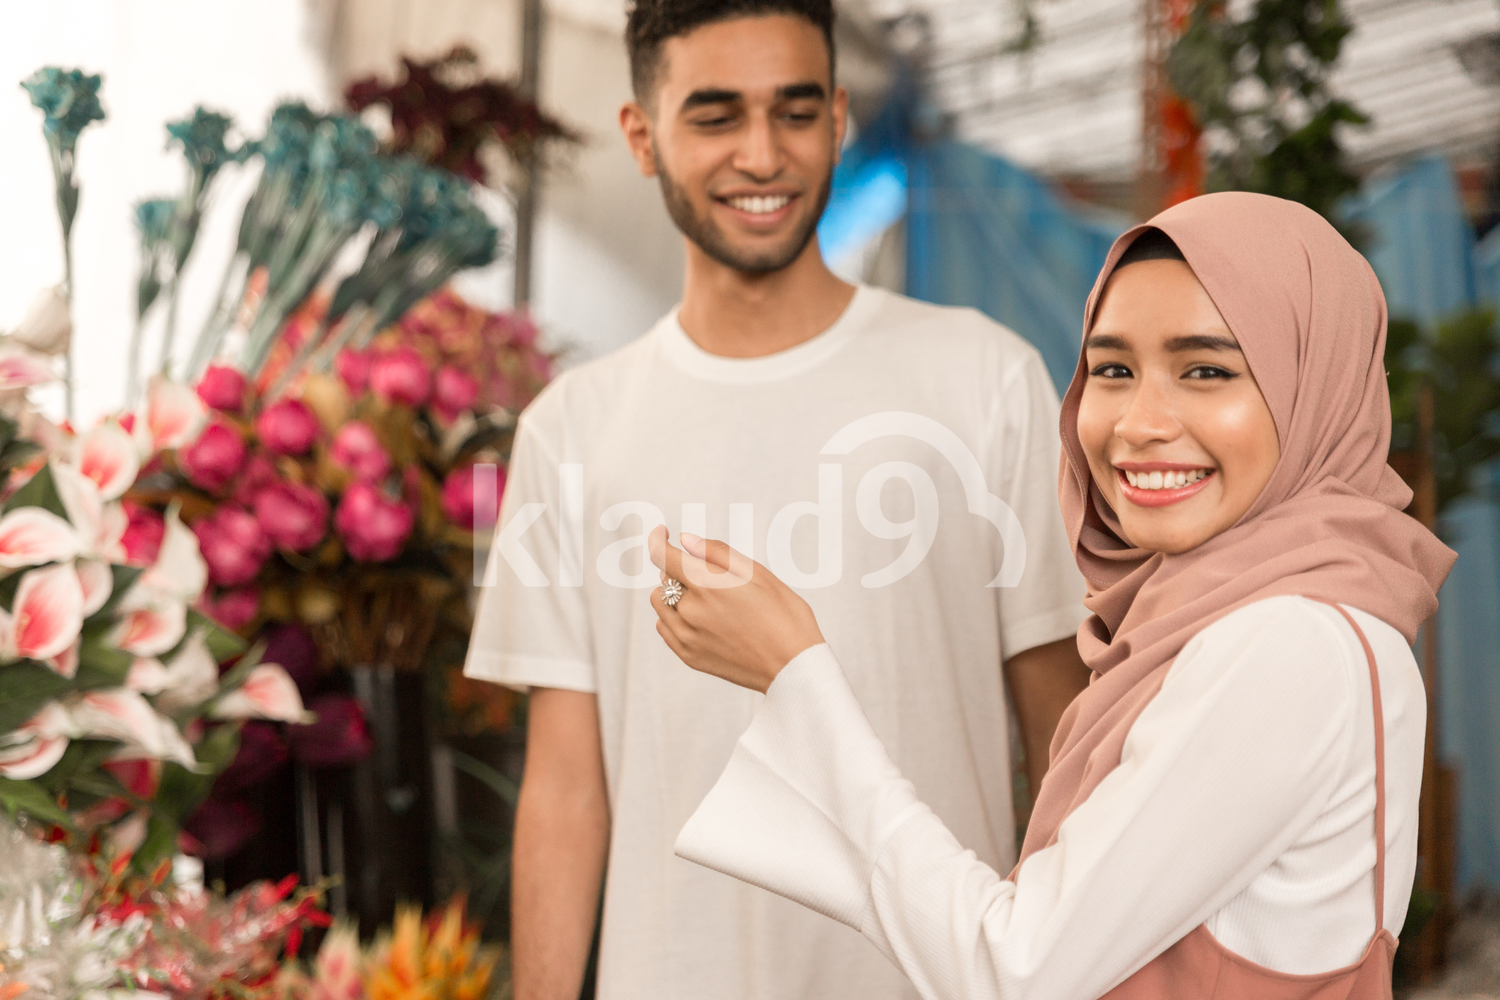 Muslim couple in flower store smiling